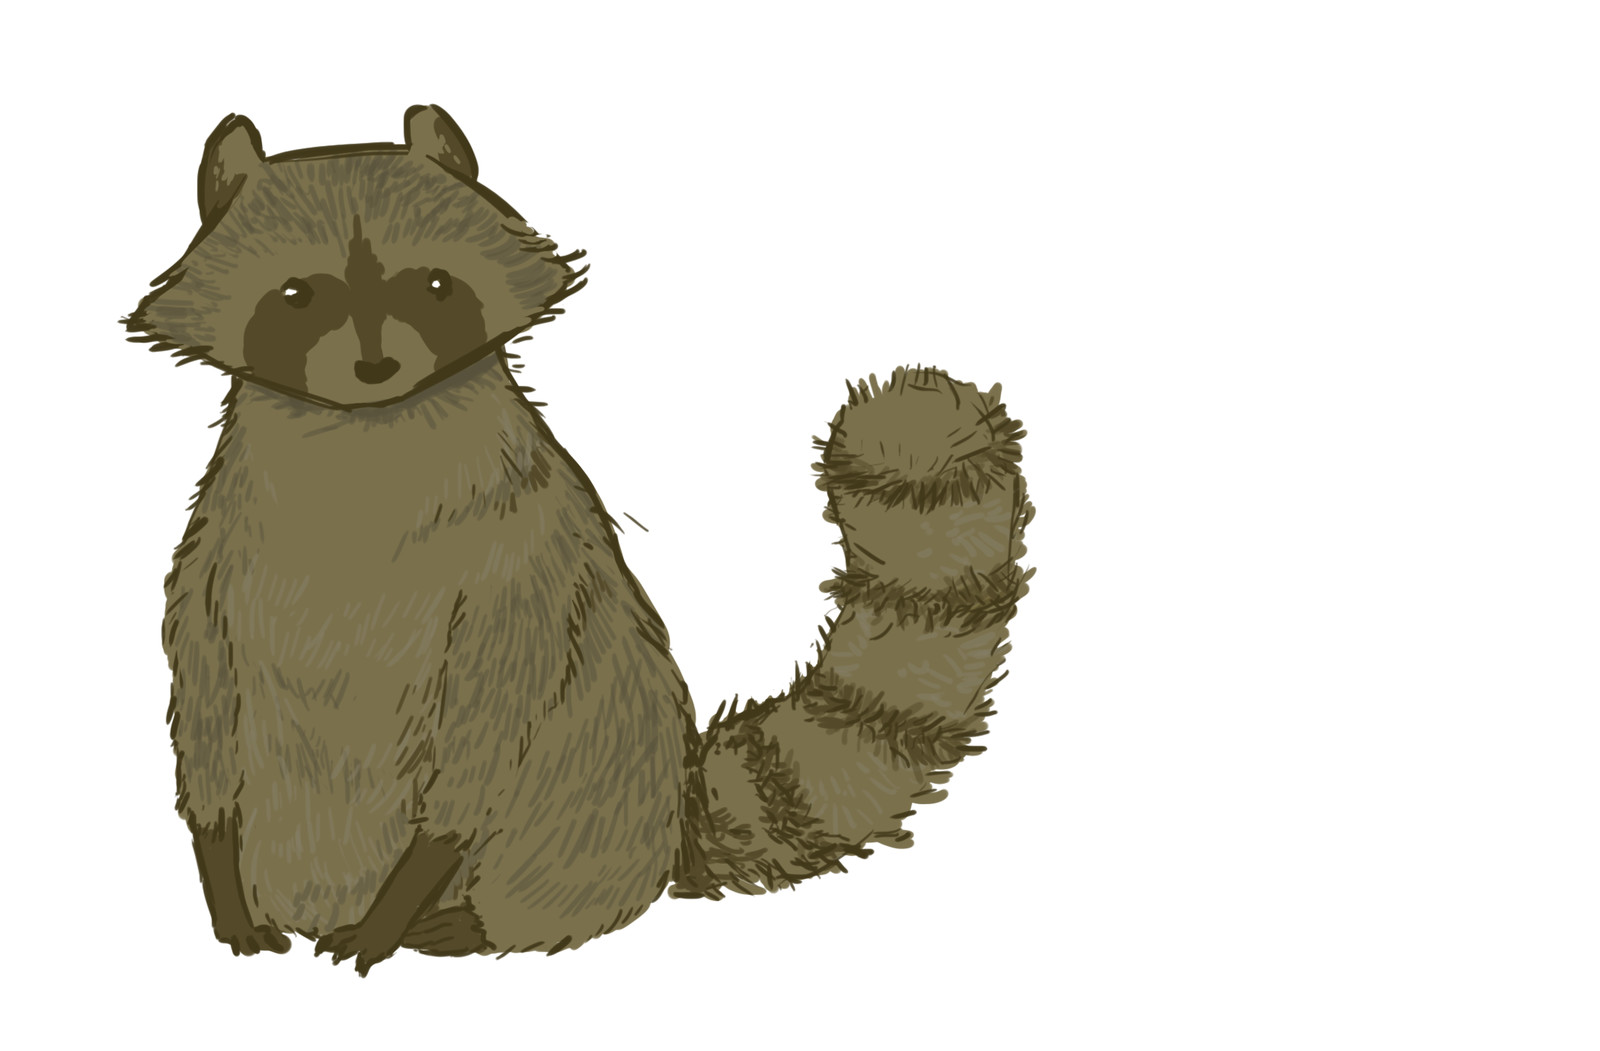 A roommate felt sad, and raccoons always make her smile.